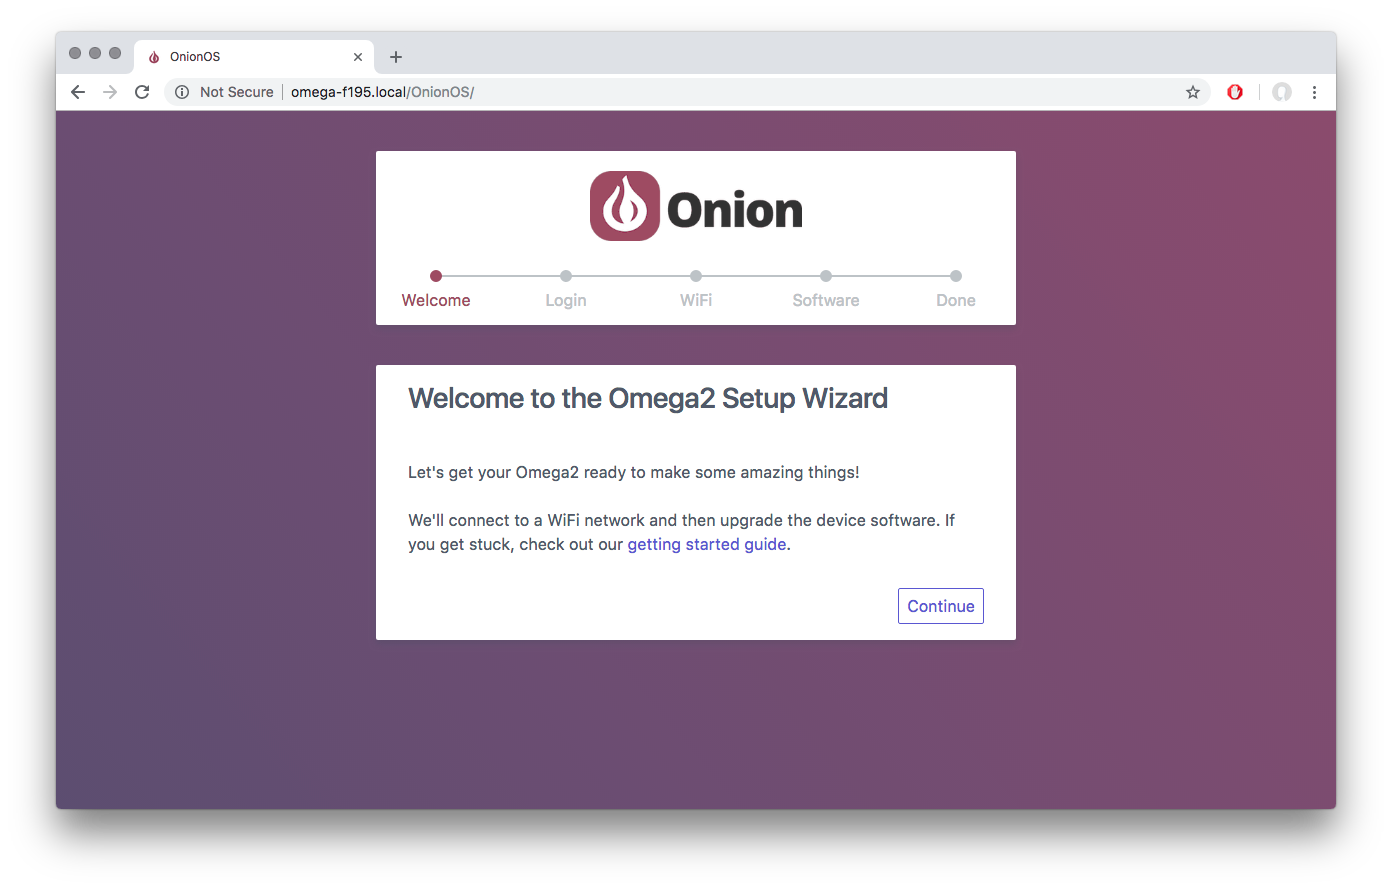 Getting Started With OnionOS